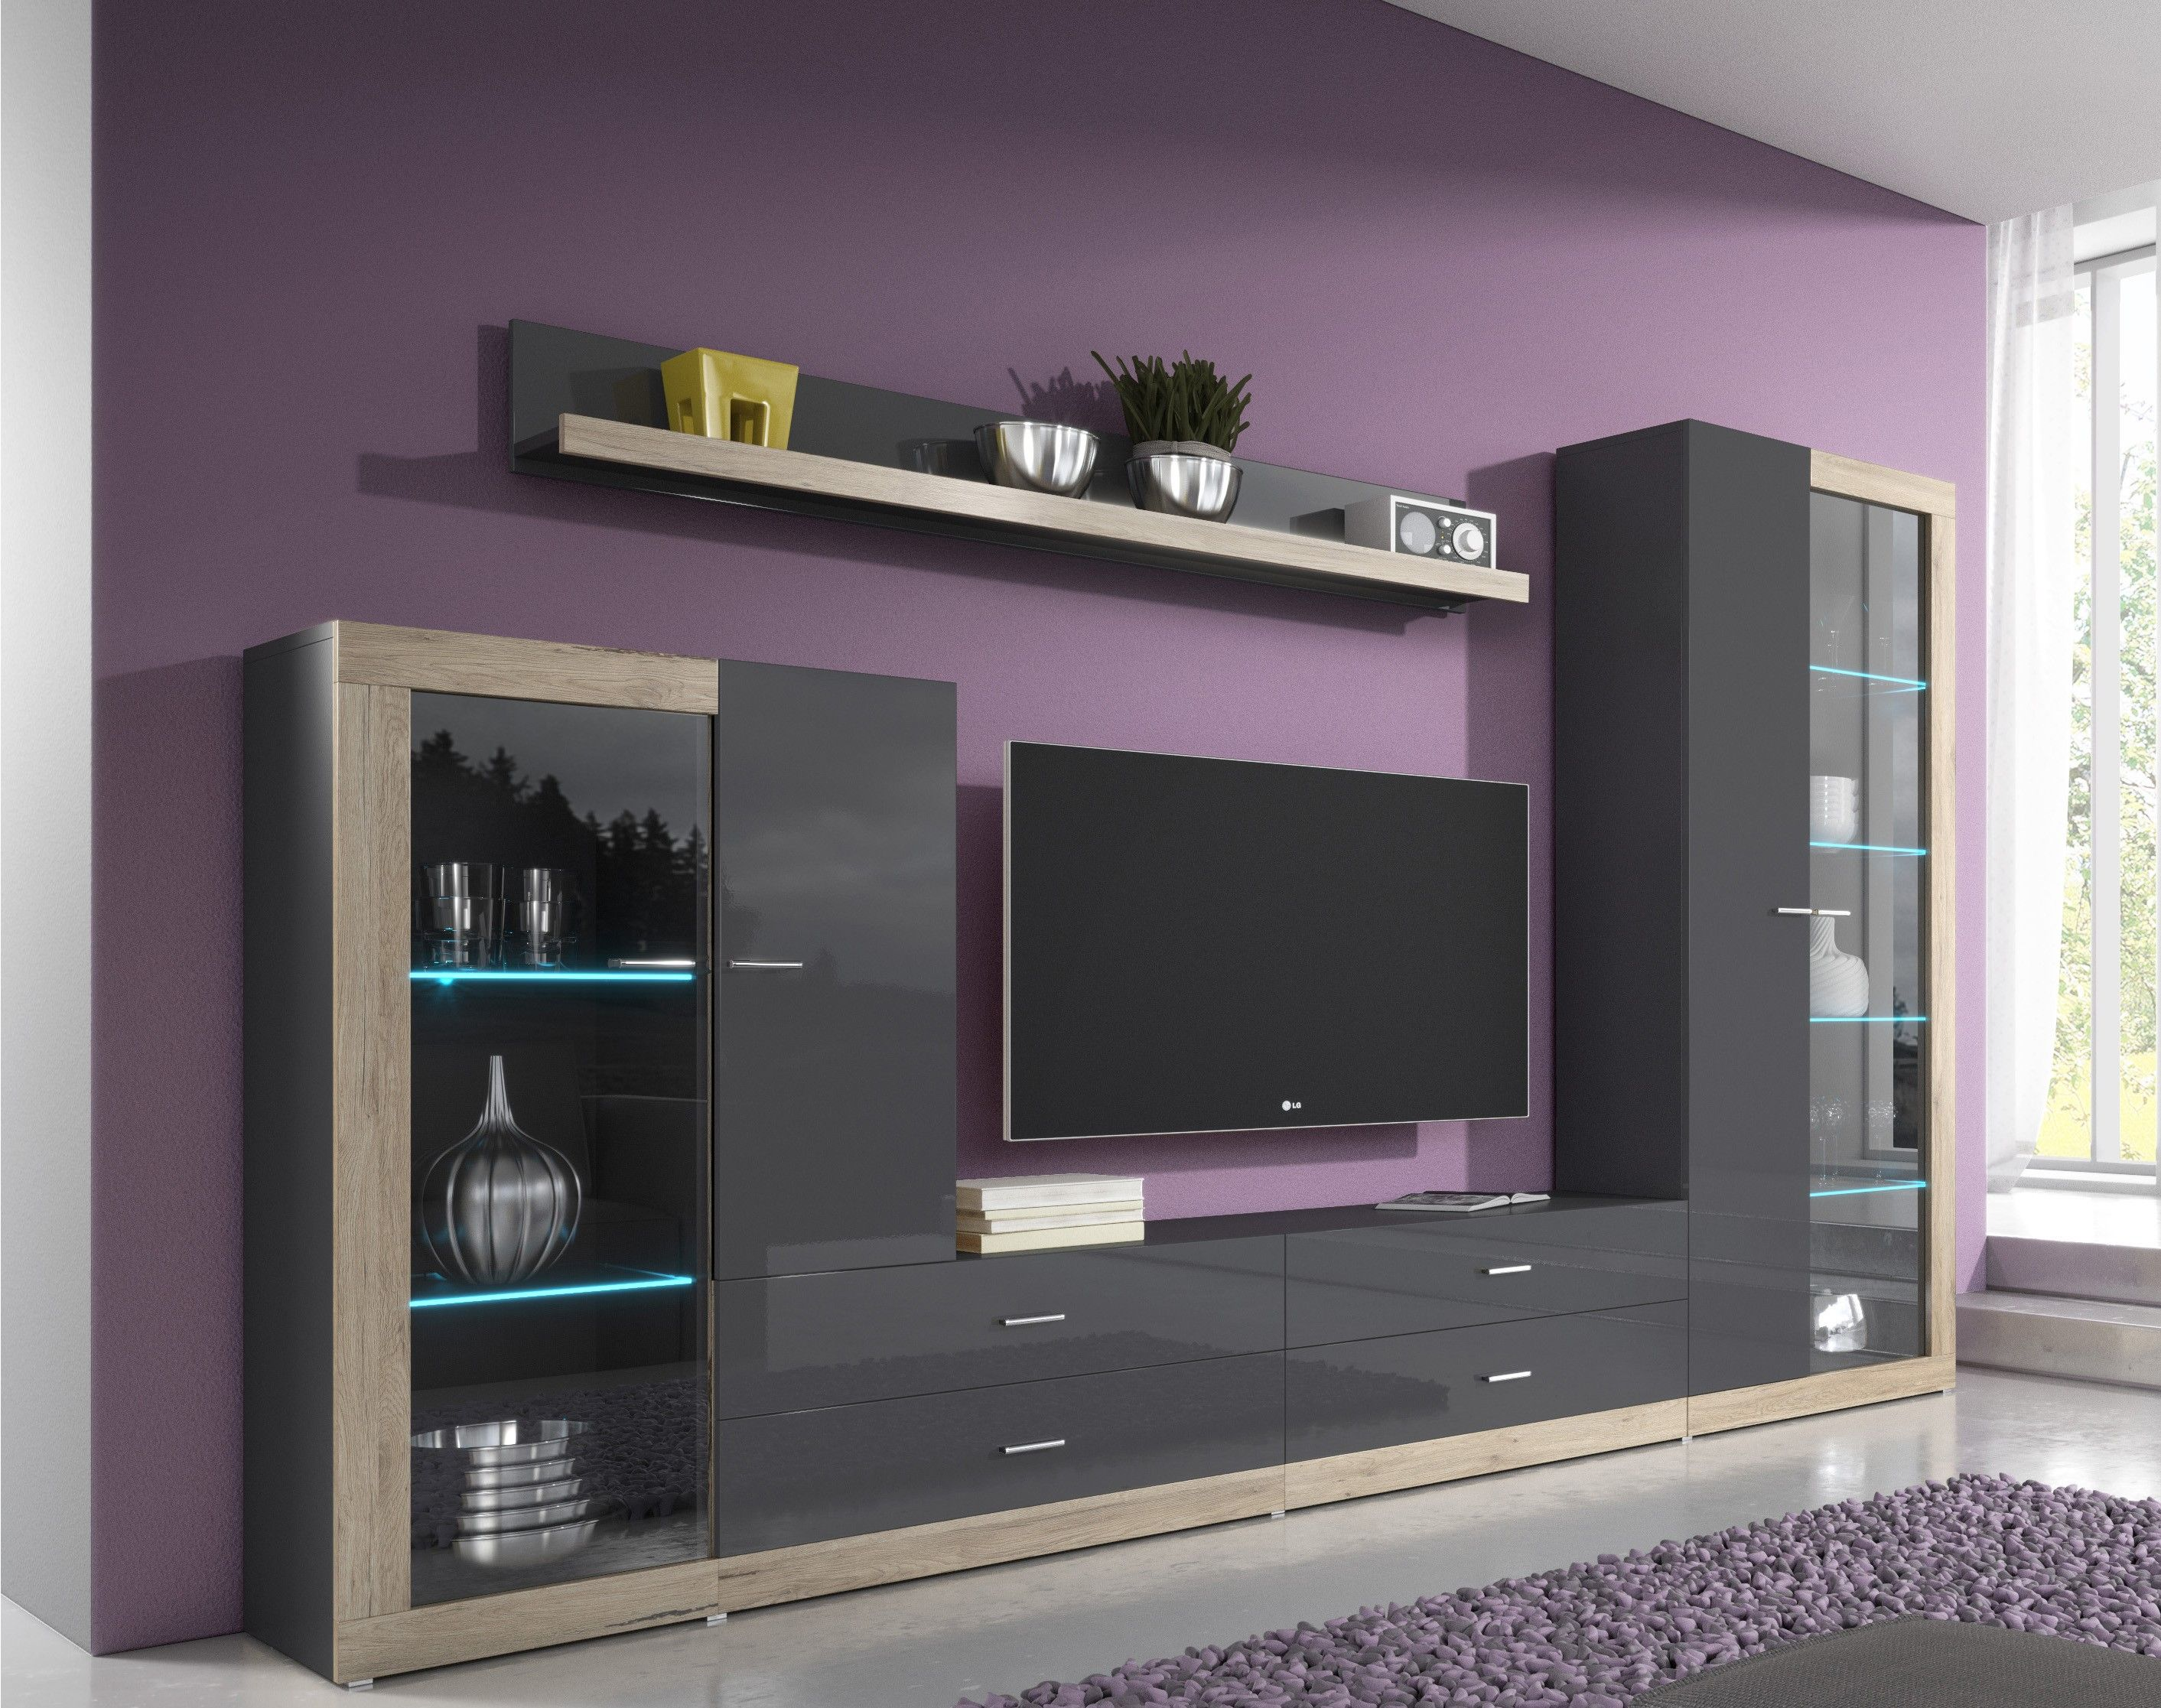 Wall Unit Modern Wall Unit Tessa 1 Living Room Wall Units Modern Wall